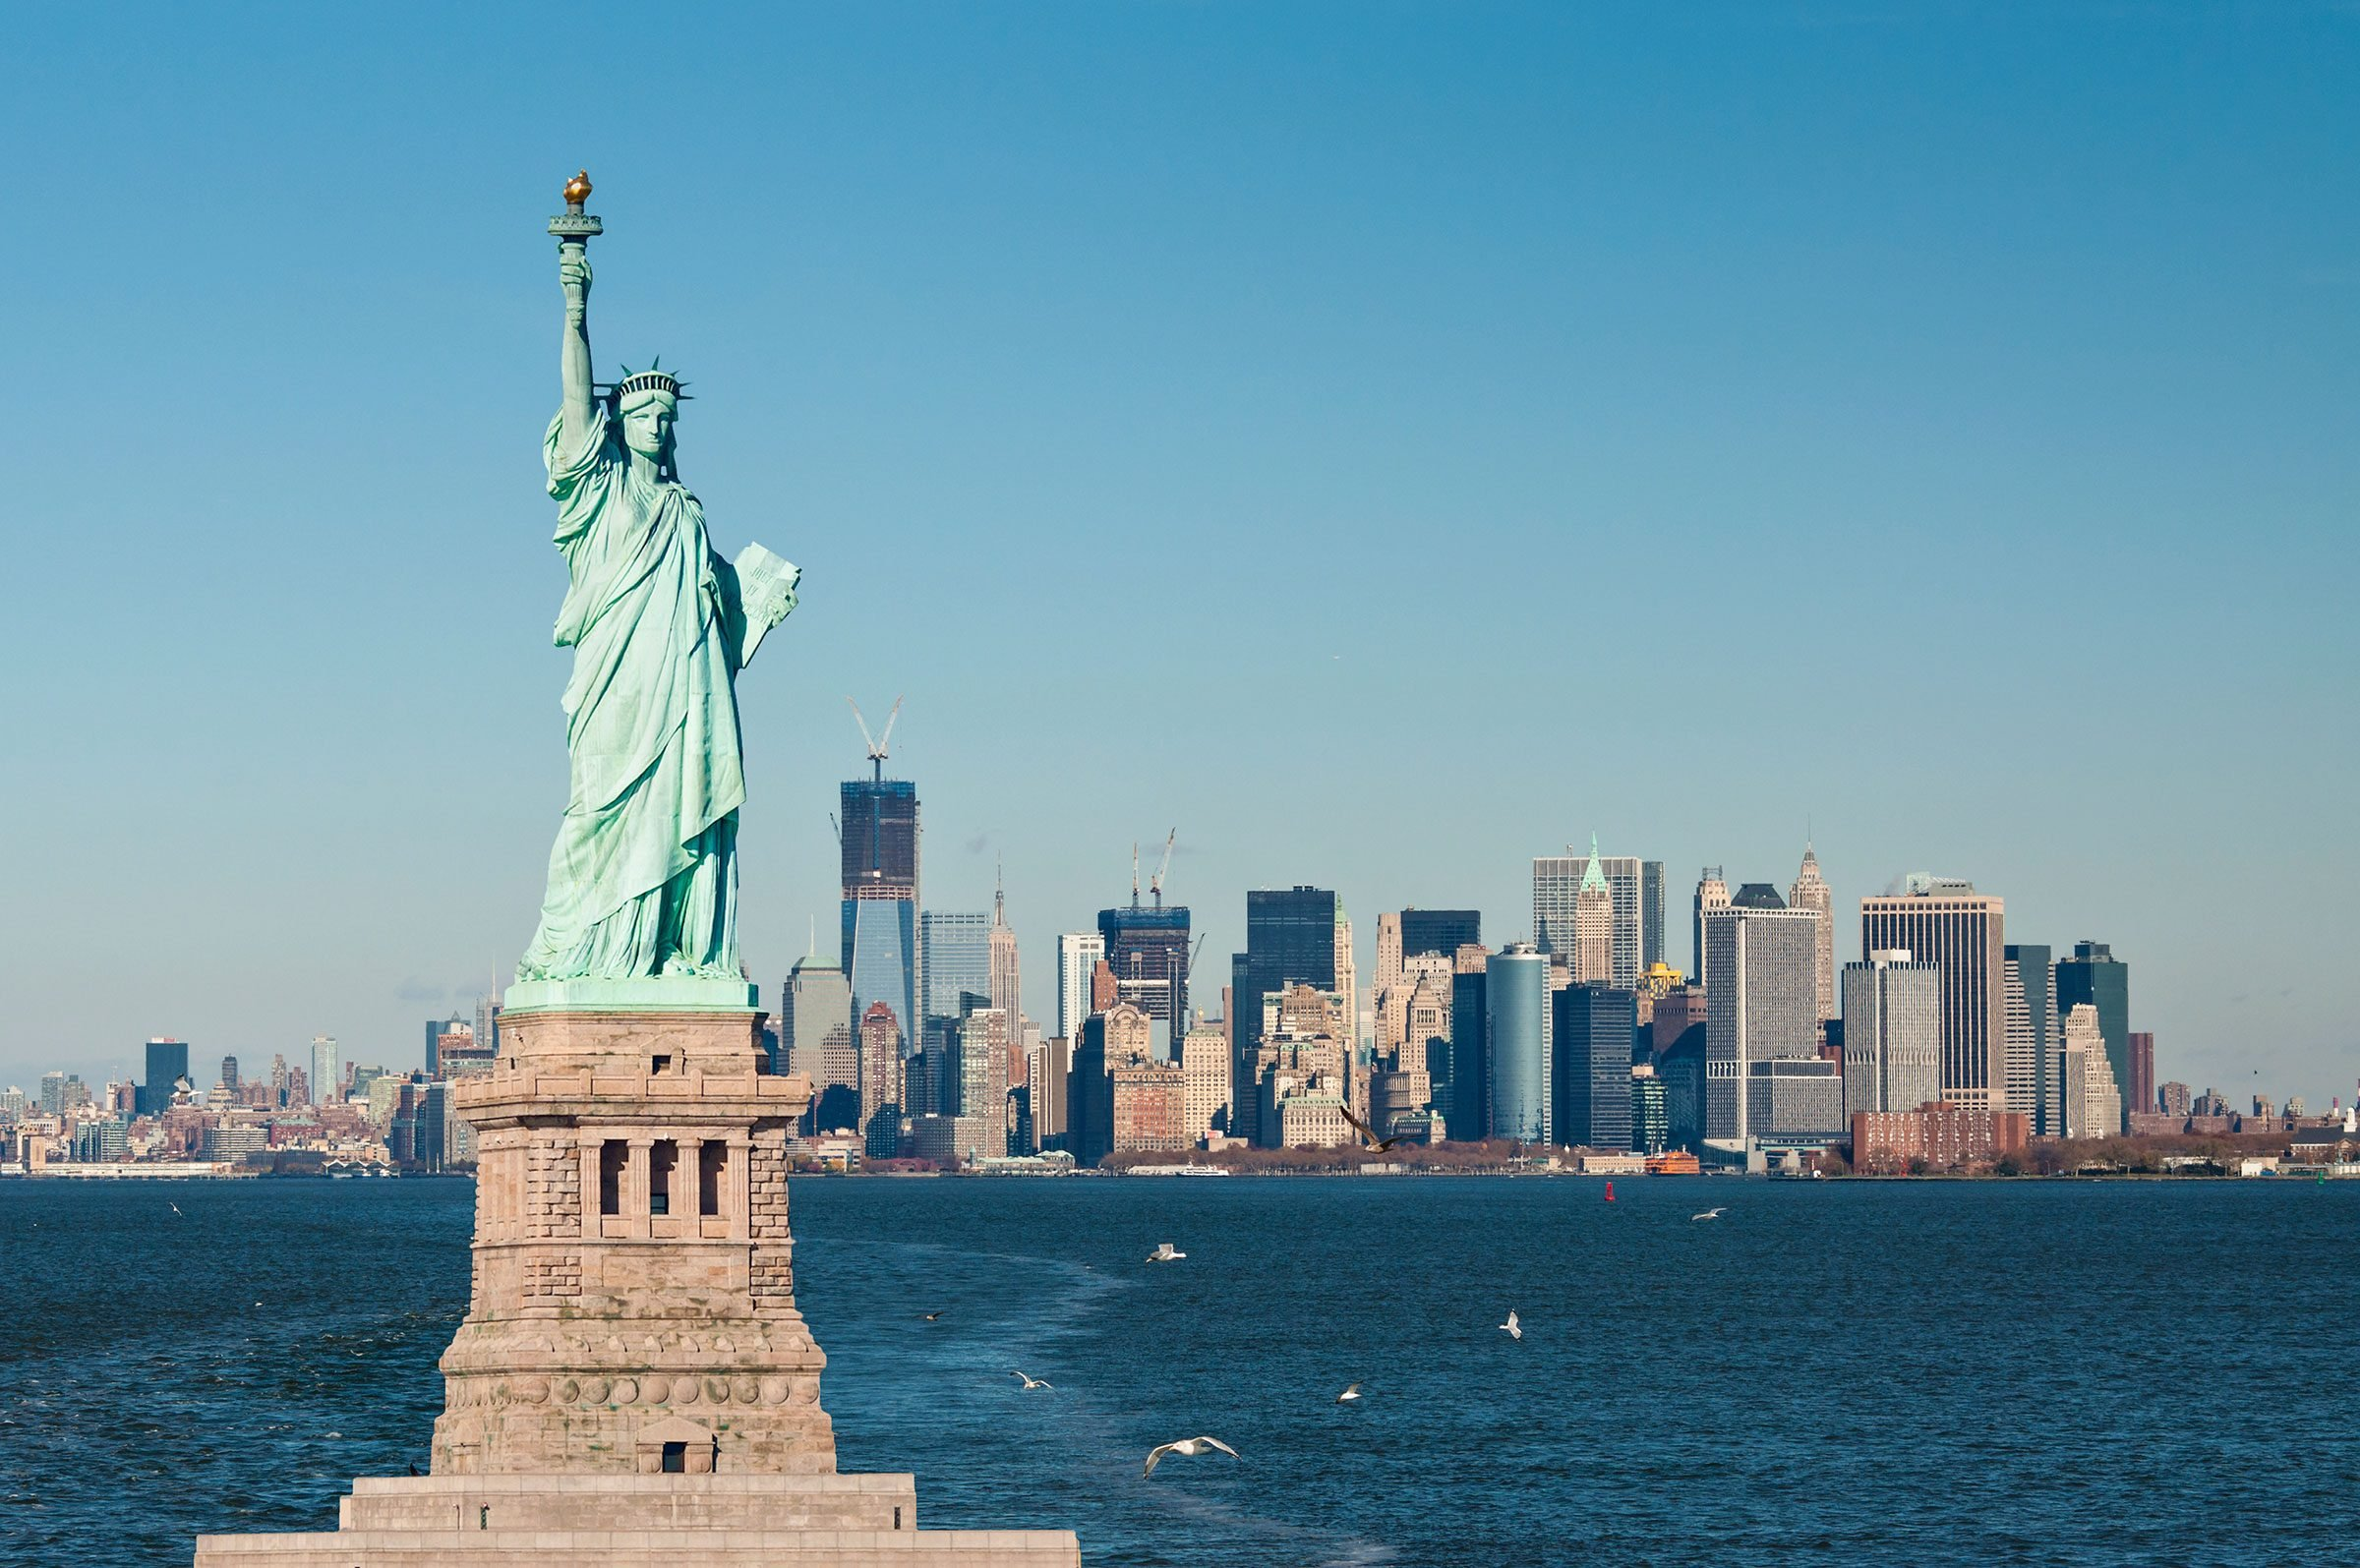 Picture of the Statue of Liberty, New York in the background